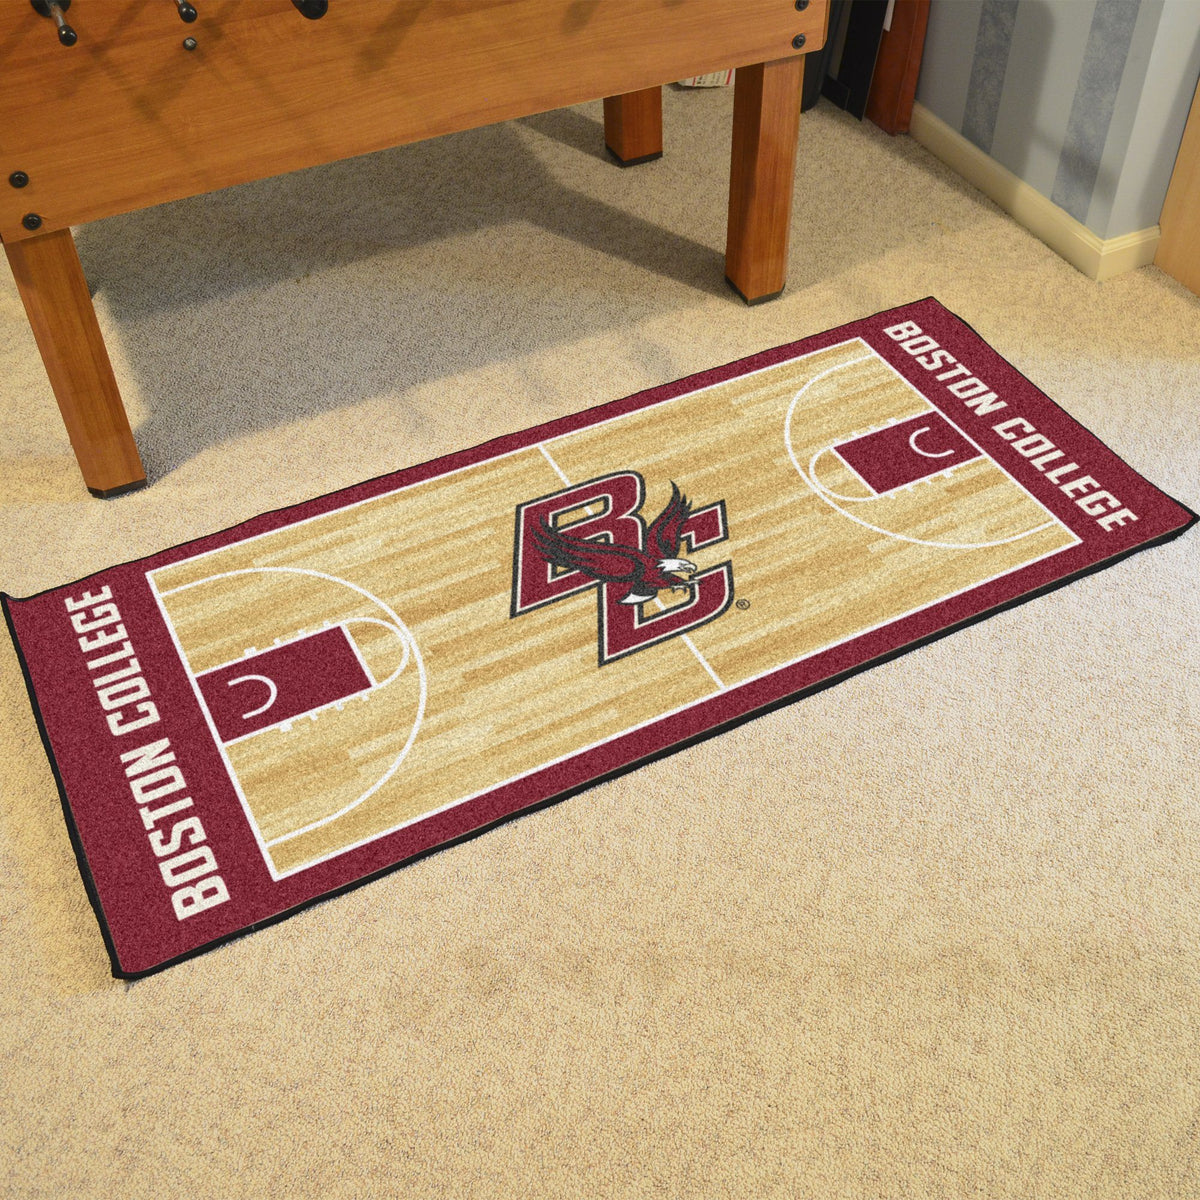 Collegiate - NCAA Basketball Runner Collegiate Mats, Rectangular Mats, NCAA Basketball Runner, Collegiate, Home Fan Mats Boston College